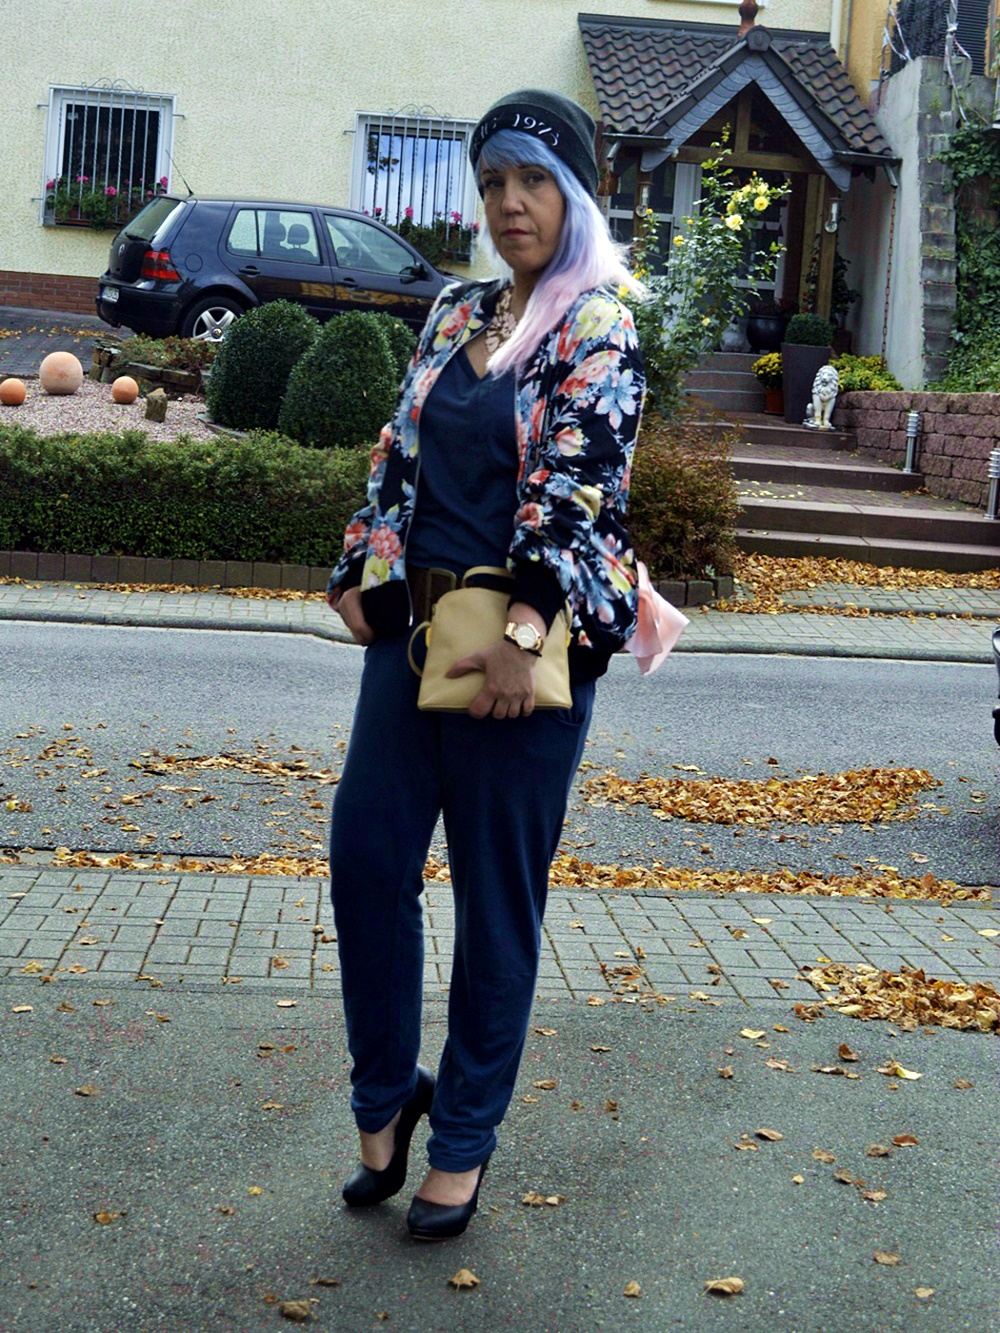 Petrol blue jumpsuit & flowerprinted Bomberjacket - Streetstyle look for autumn